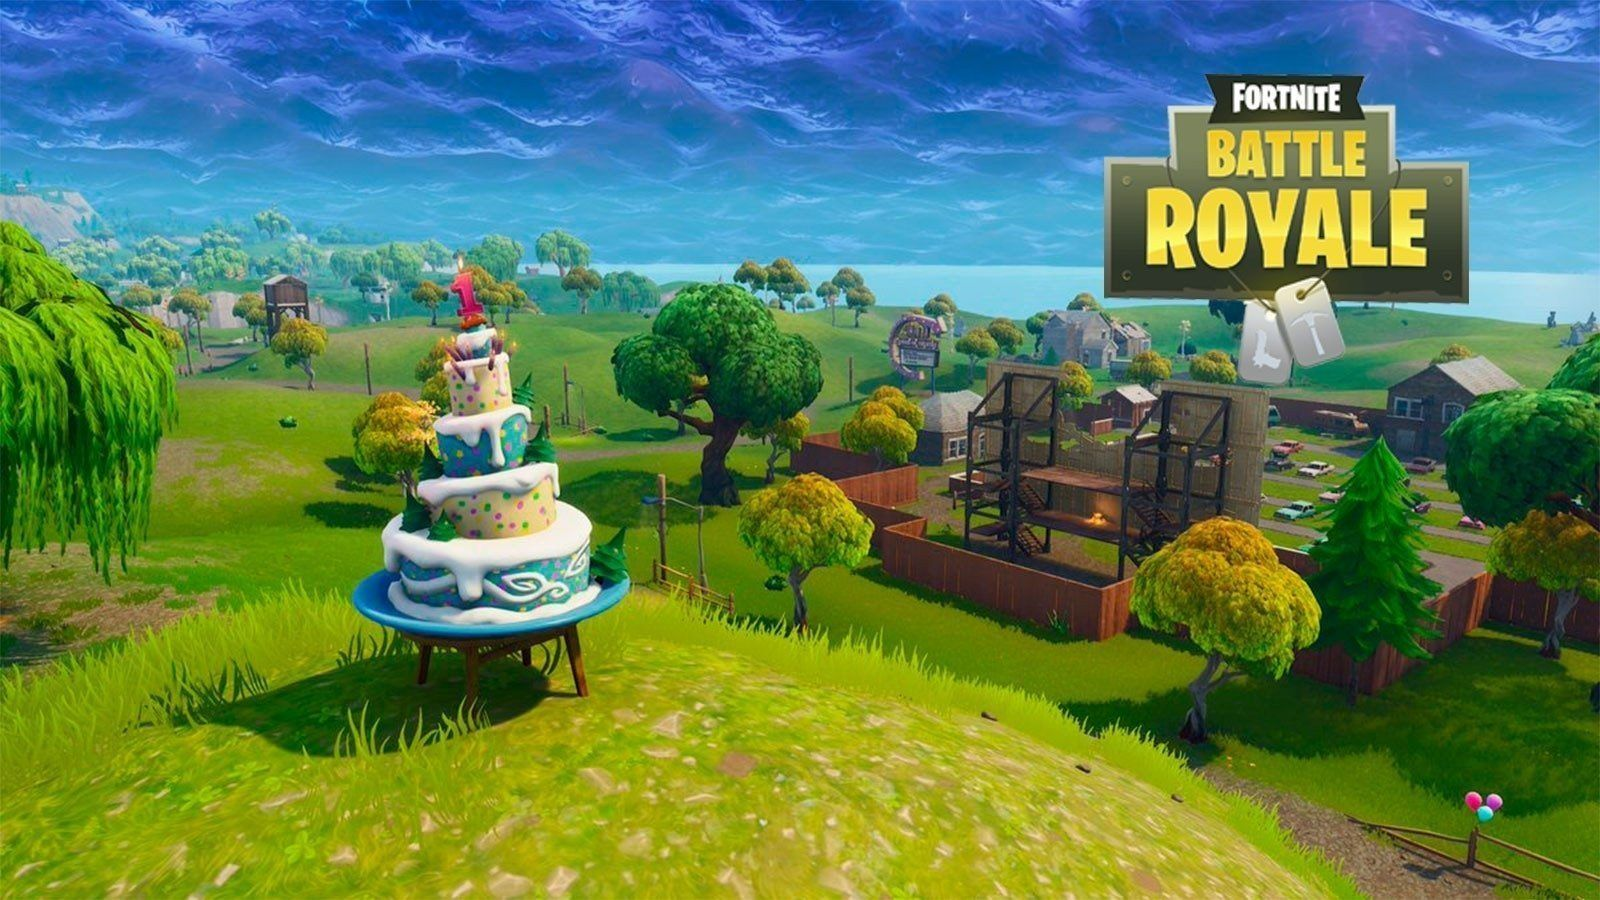 All Known Birthday Cake Locations for the Fortnite Battle